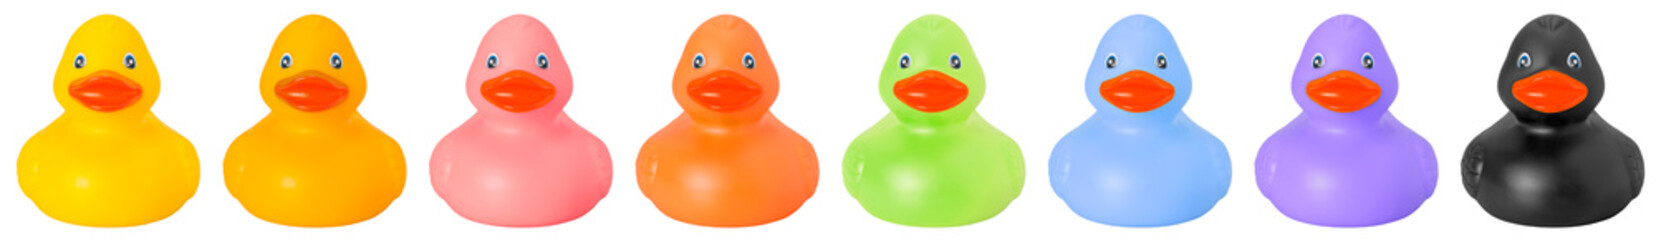 Toy rubber colored ducks isolated on white front side